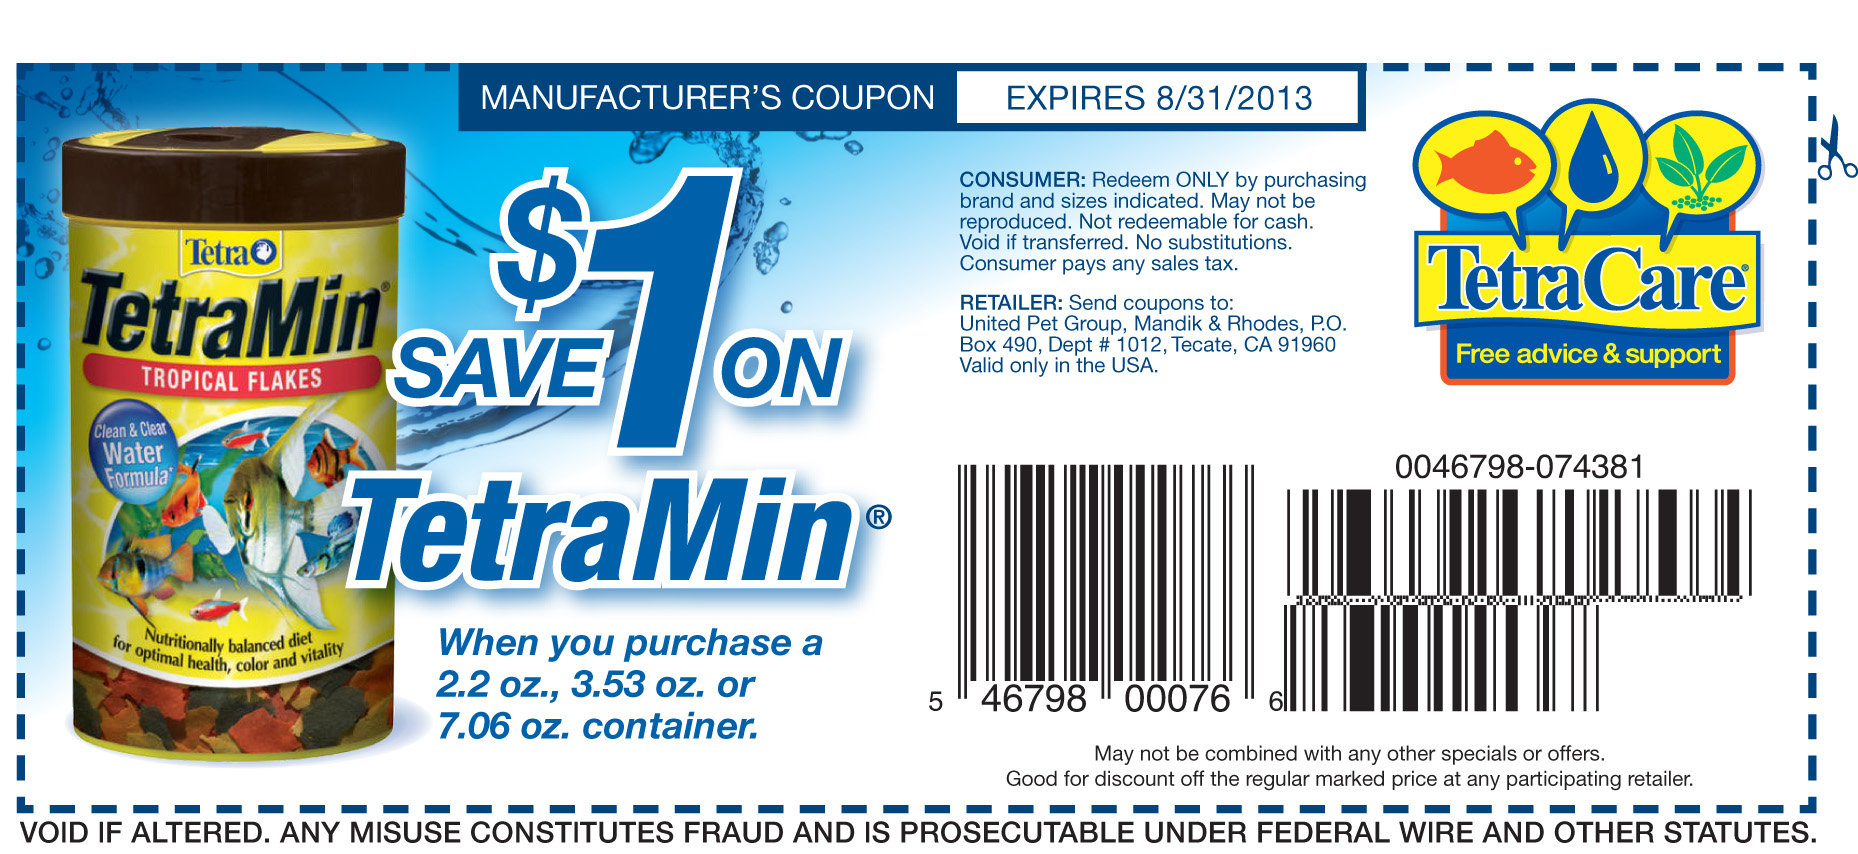 Coupon code for kmart